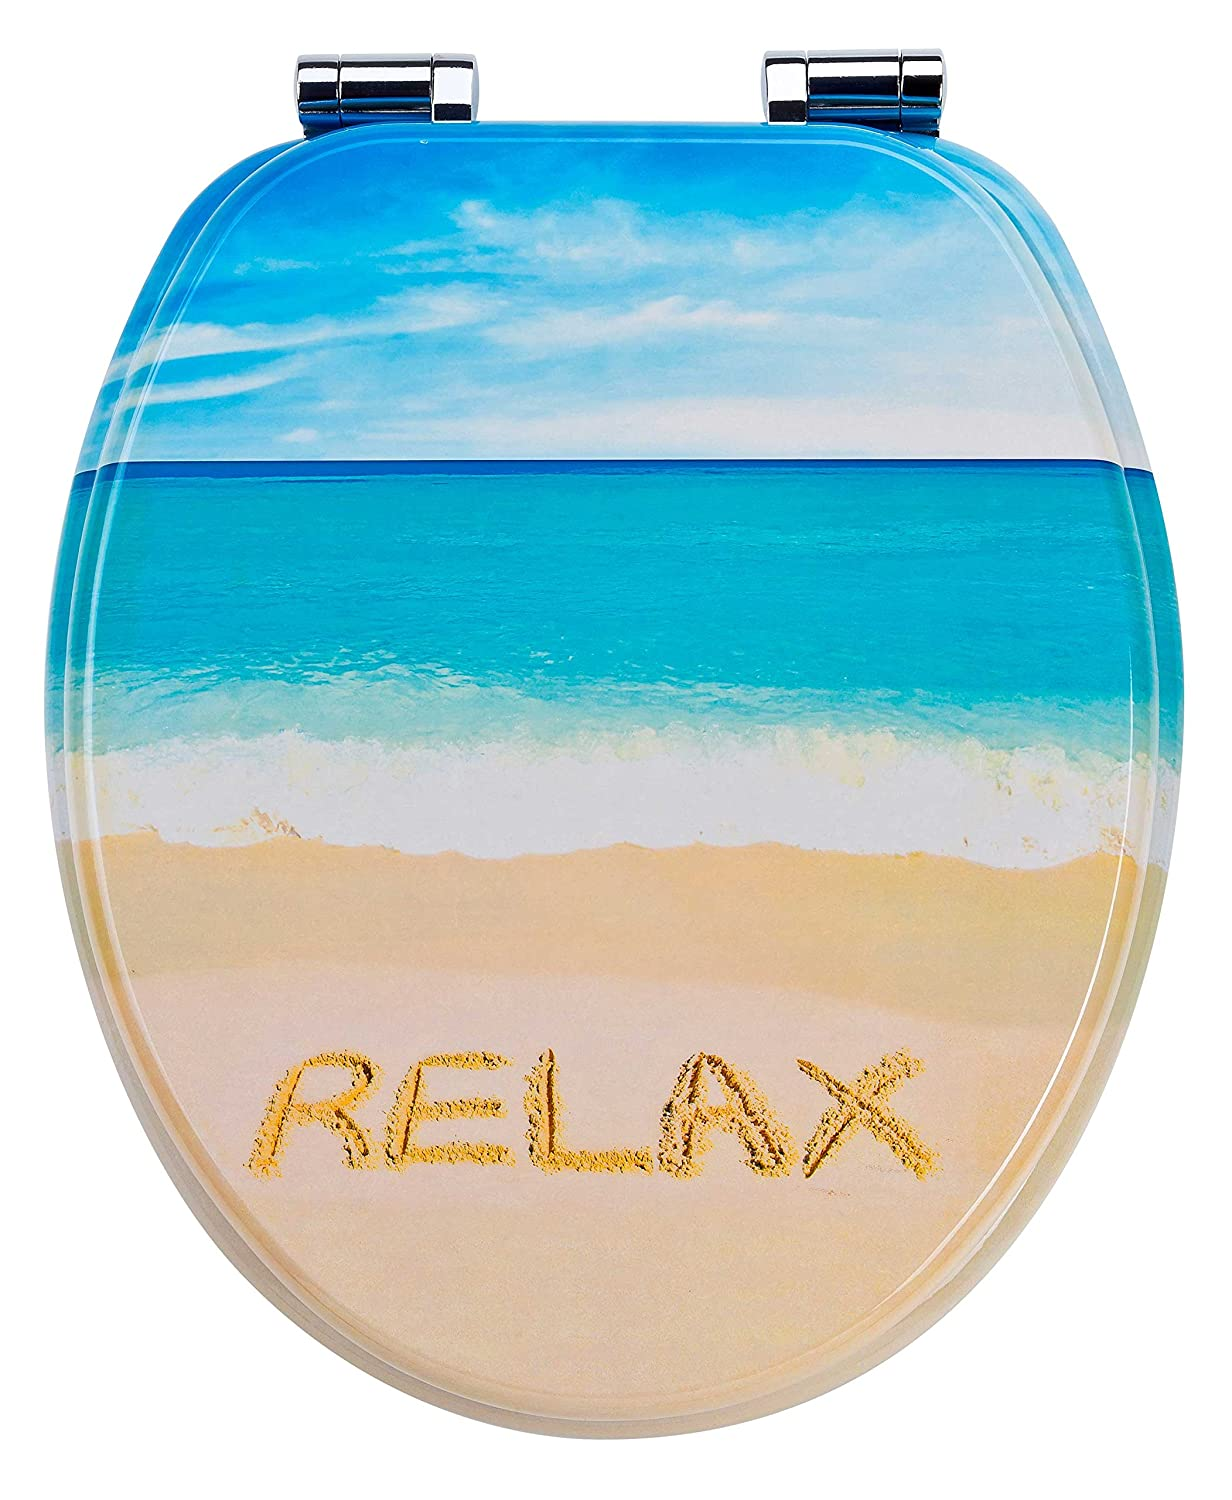 Relax EISL Asia Toilet Seat with Soft Closing Mechanism, Multi Coloured, EDTR01SC